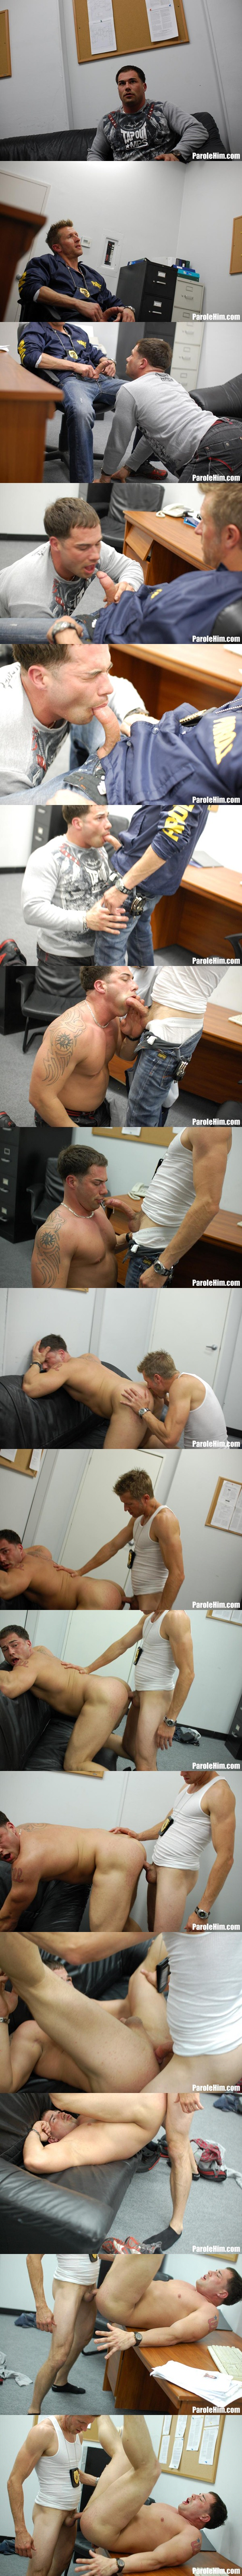 Officer Johnson Barebacks Muscle Jock Benny G in Thug Fucking at Parolehim 01